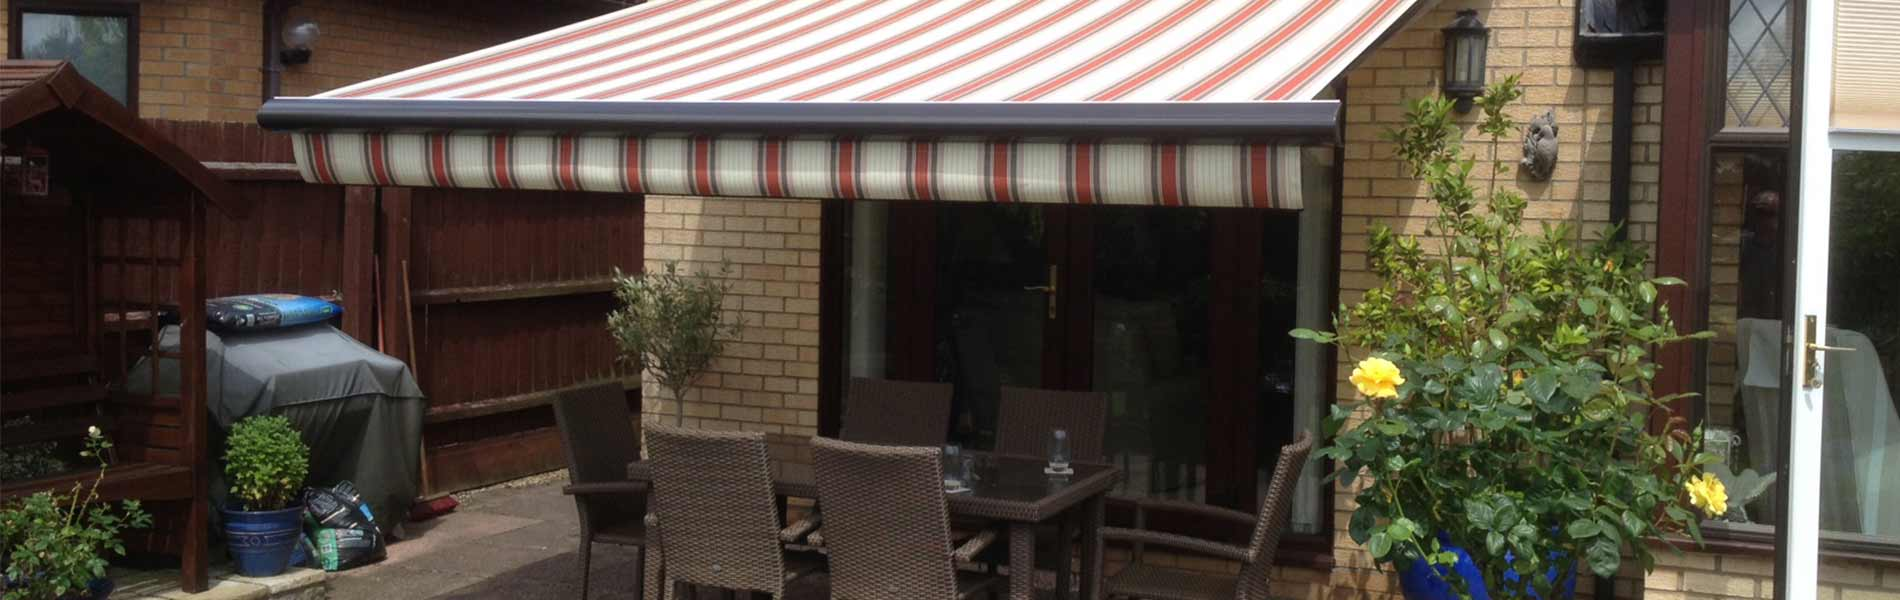 Olivair Home Improvements | Sun Awnings